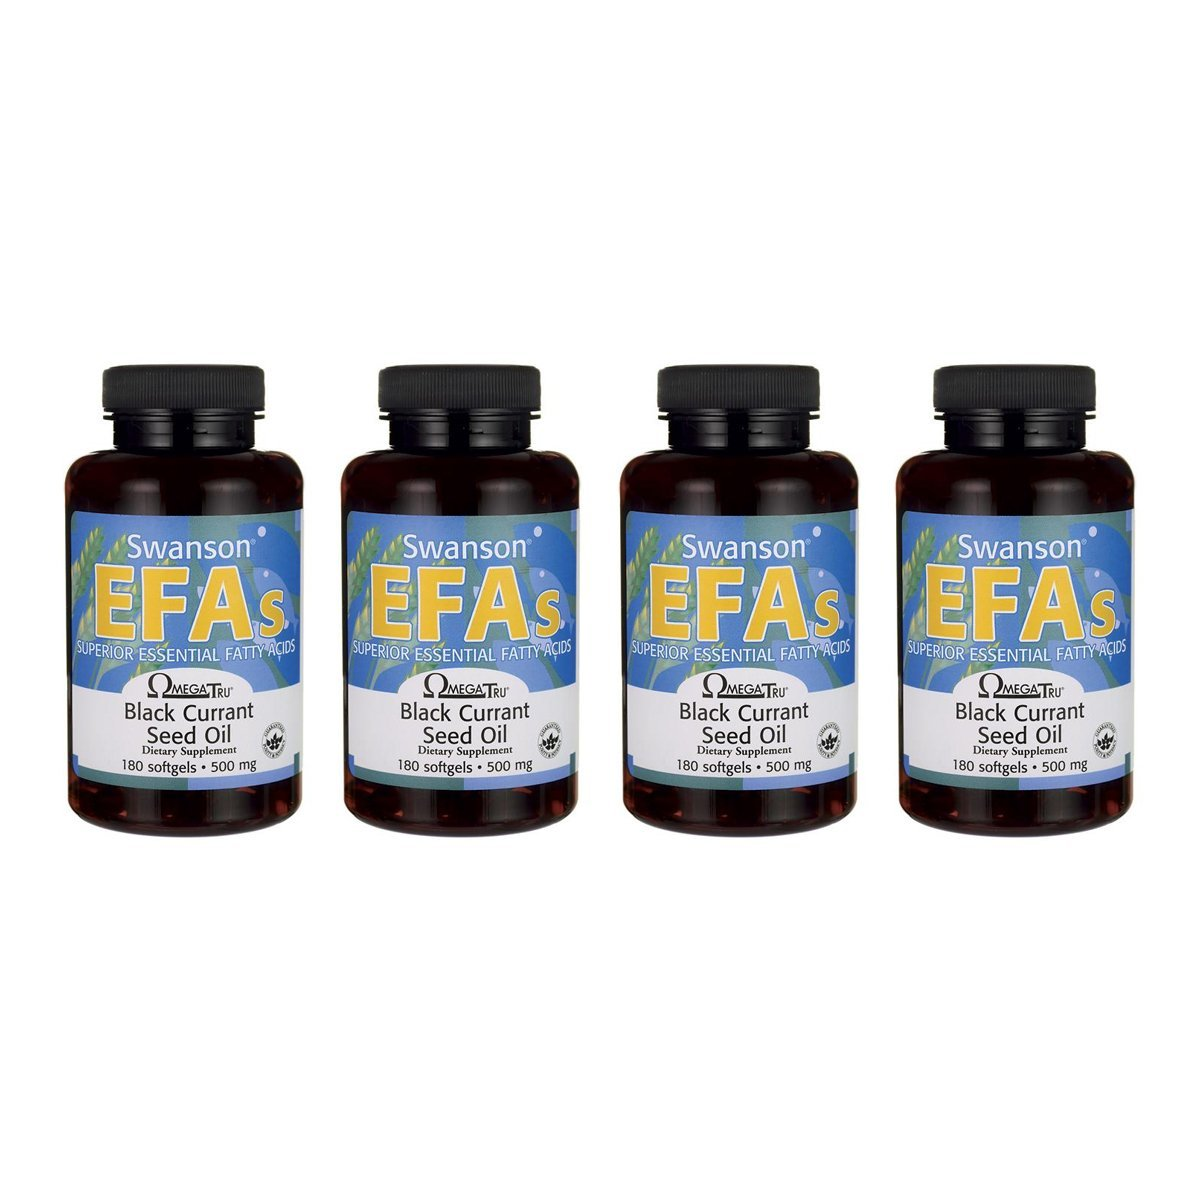 Swanson Black Currant Seed Oil Gla (Omegatru) 500 mg 180 Sgels 4 Pack by Swanson (Image #1)